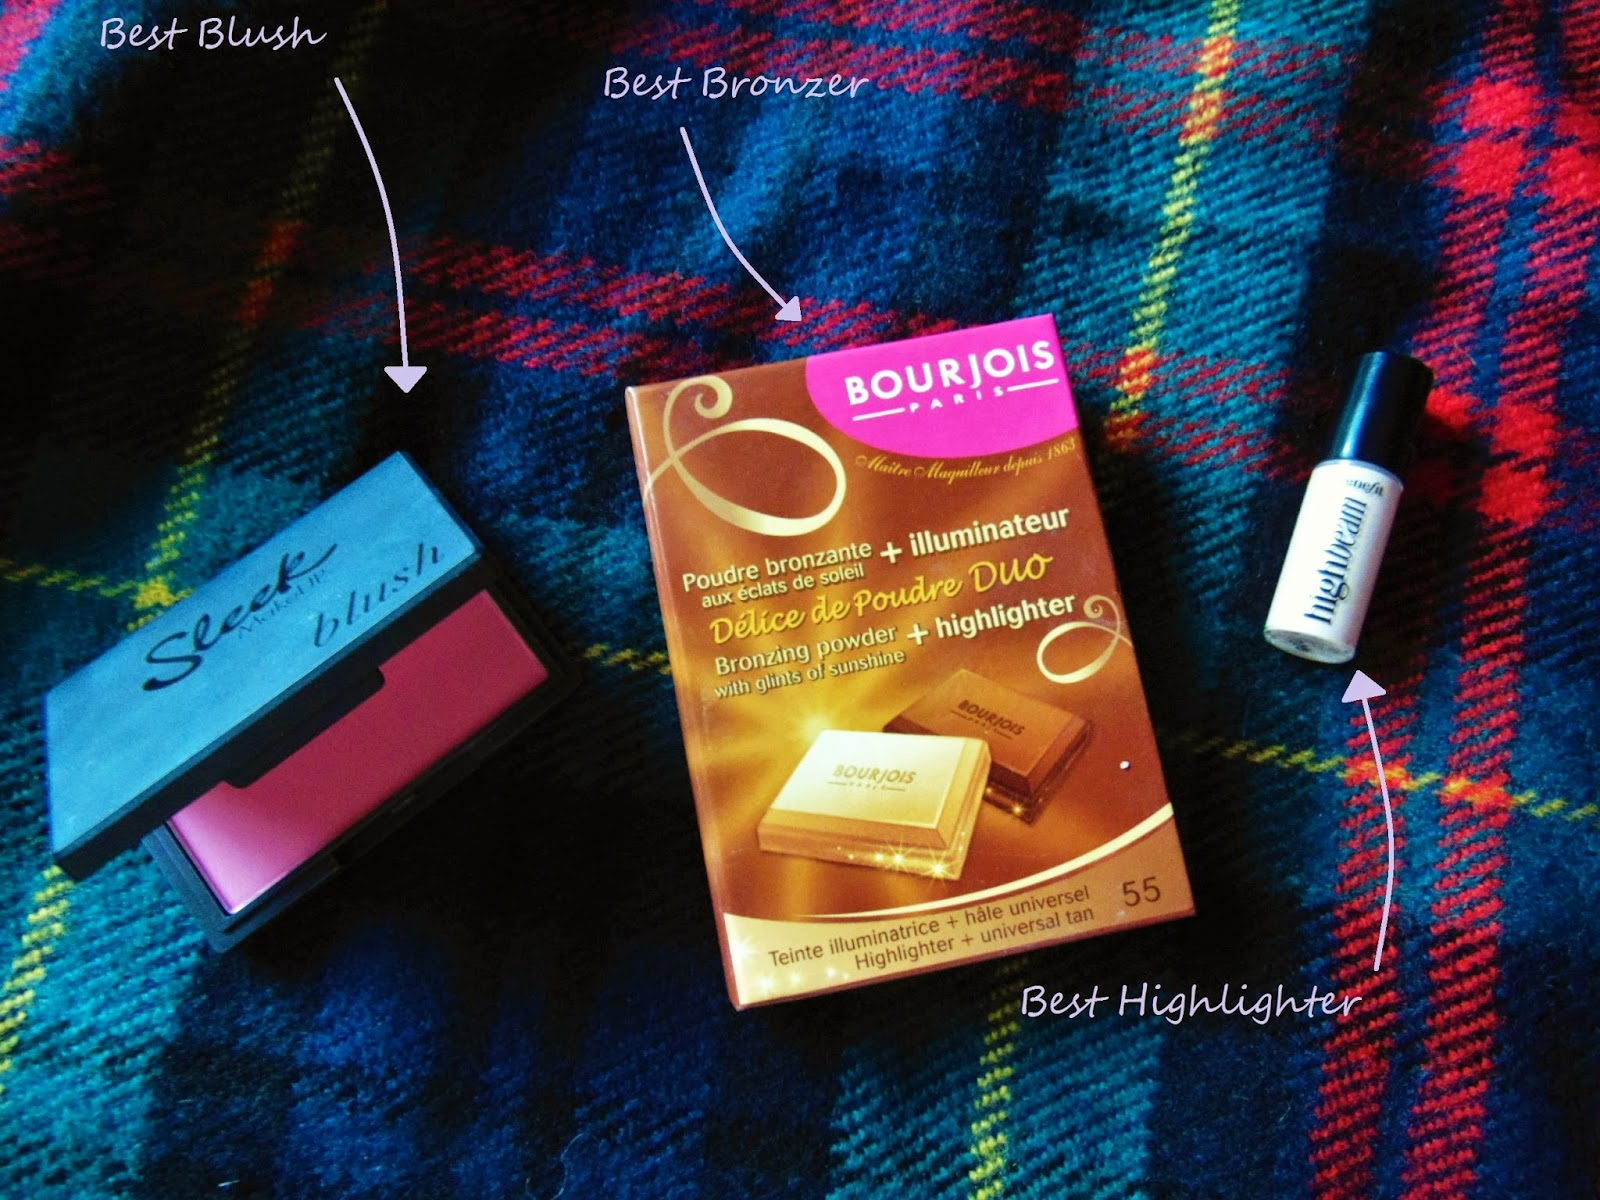 best of 2014 blush bronze highlight sleek bourjois benefit